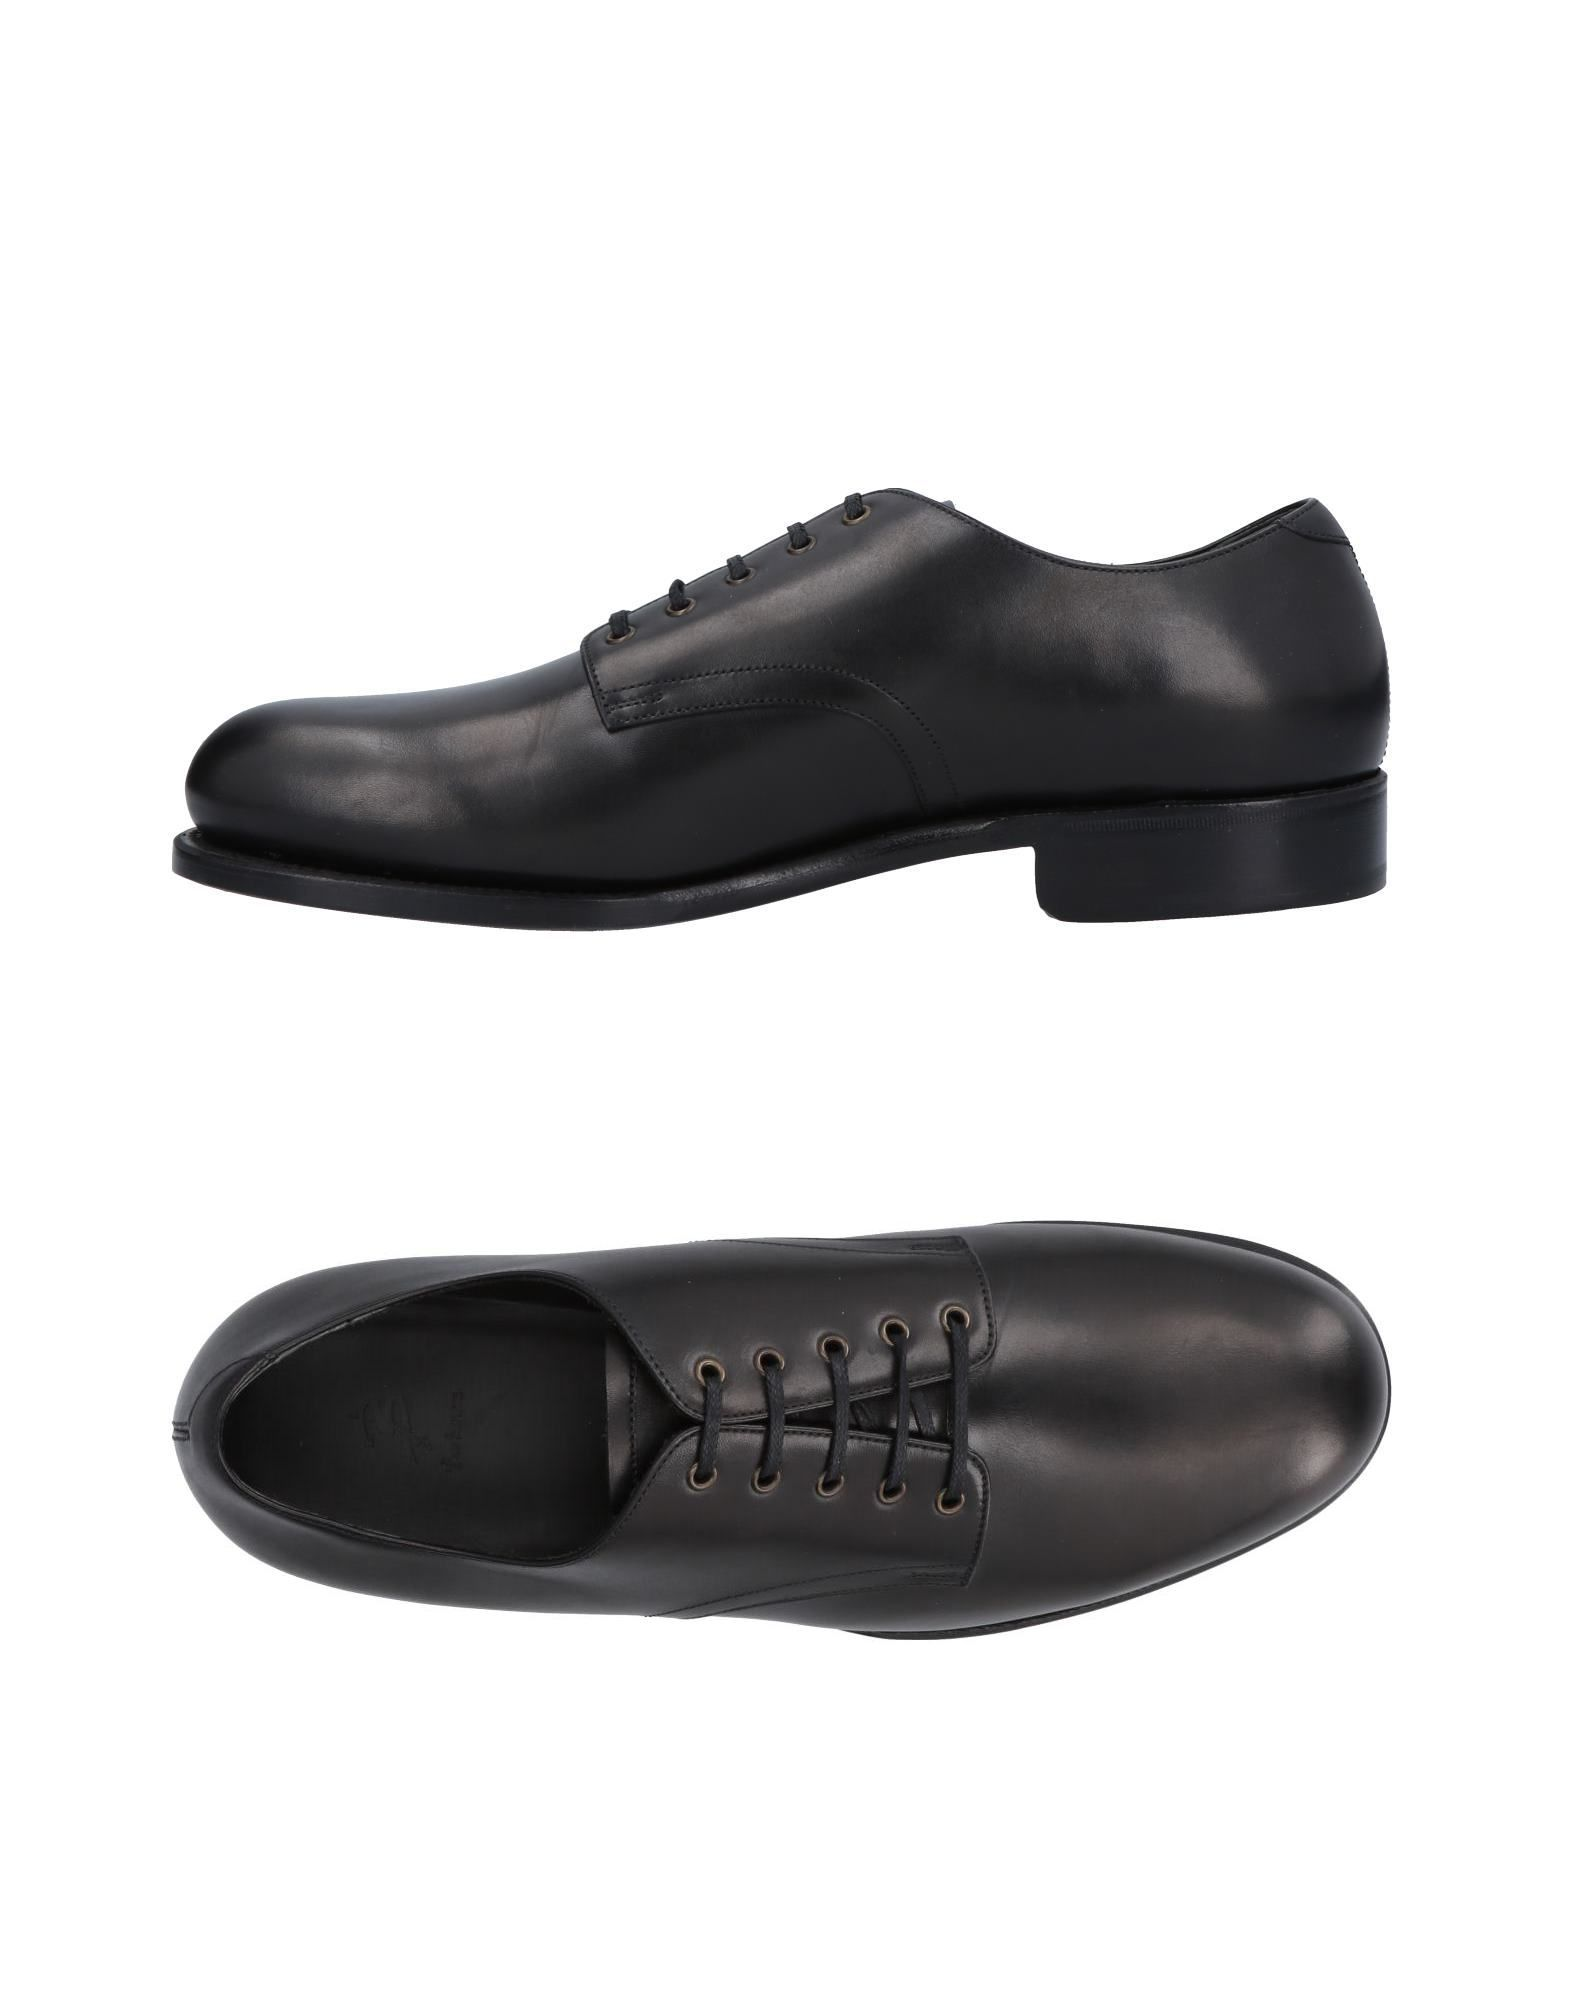 BARBANERA Laced Shoes in Black